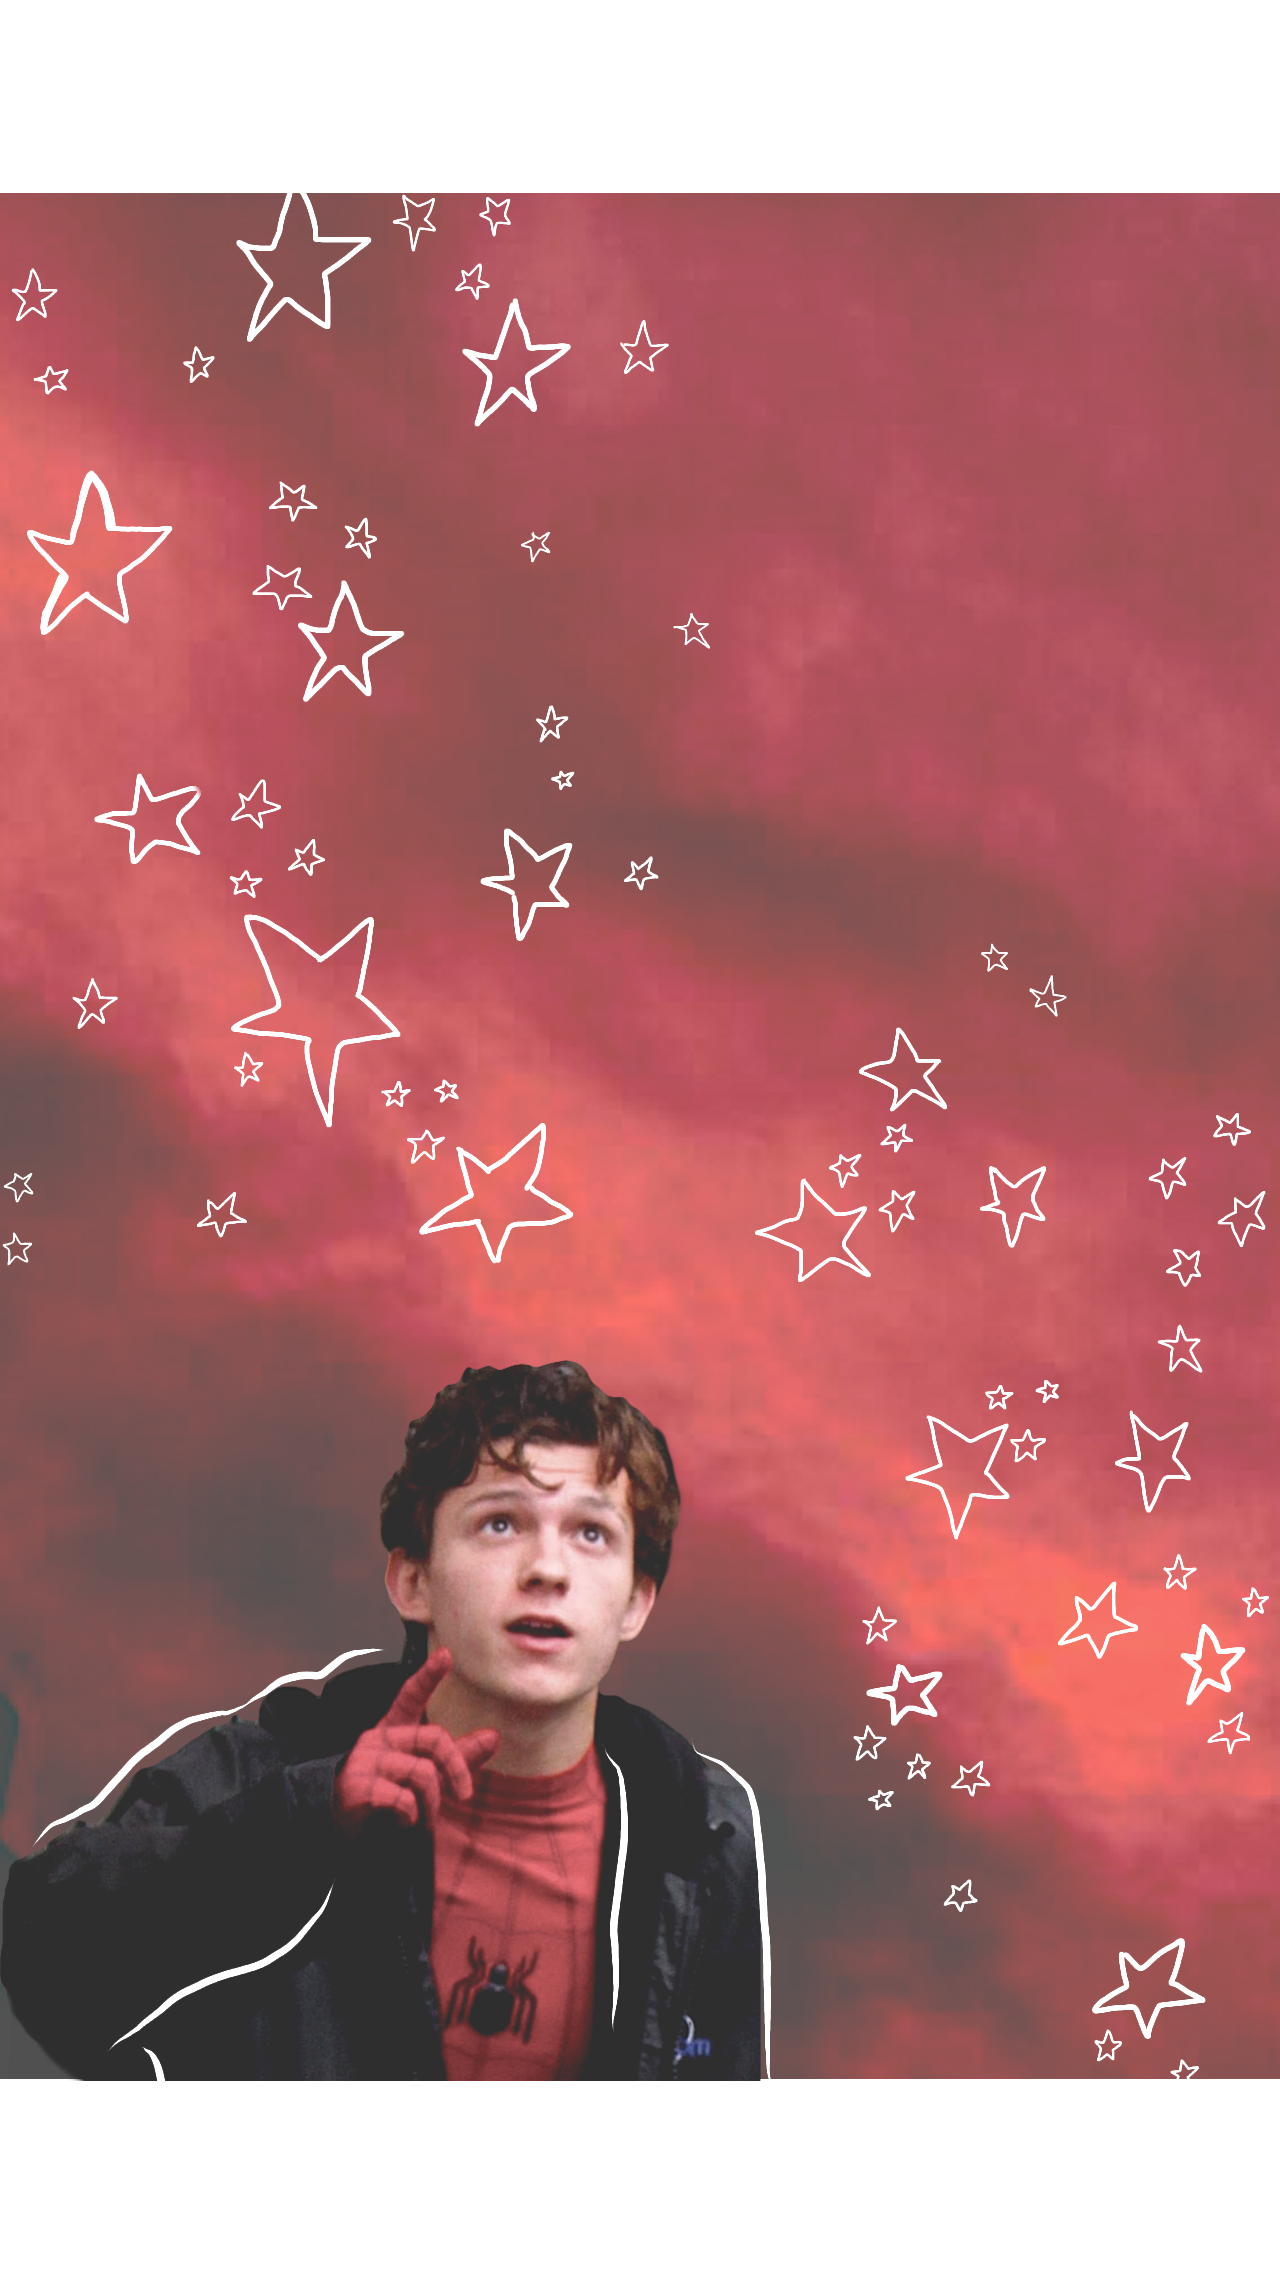 Tom Holland/peter parker red/pink wallpaper with stars